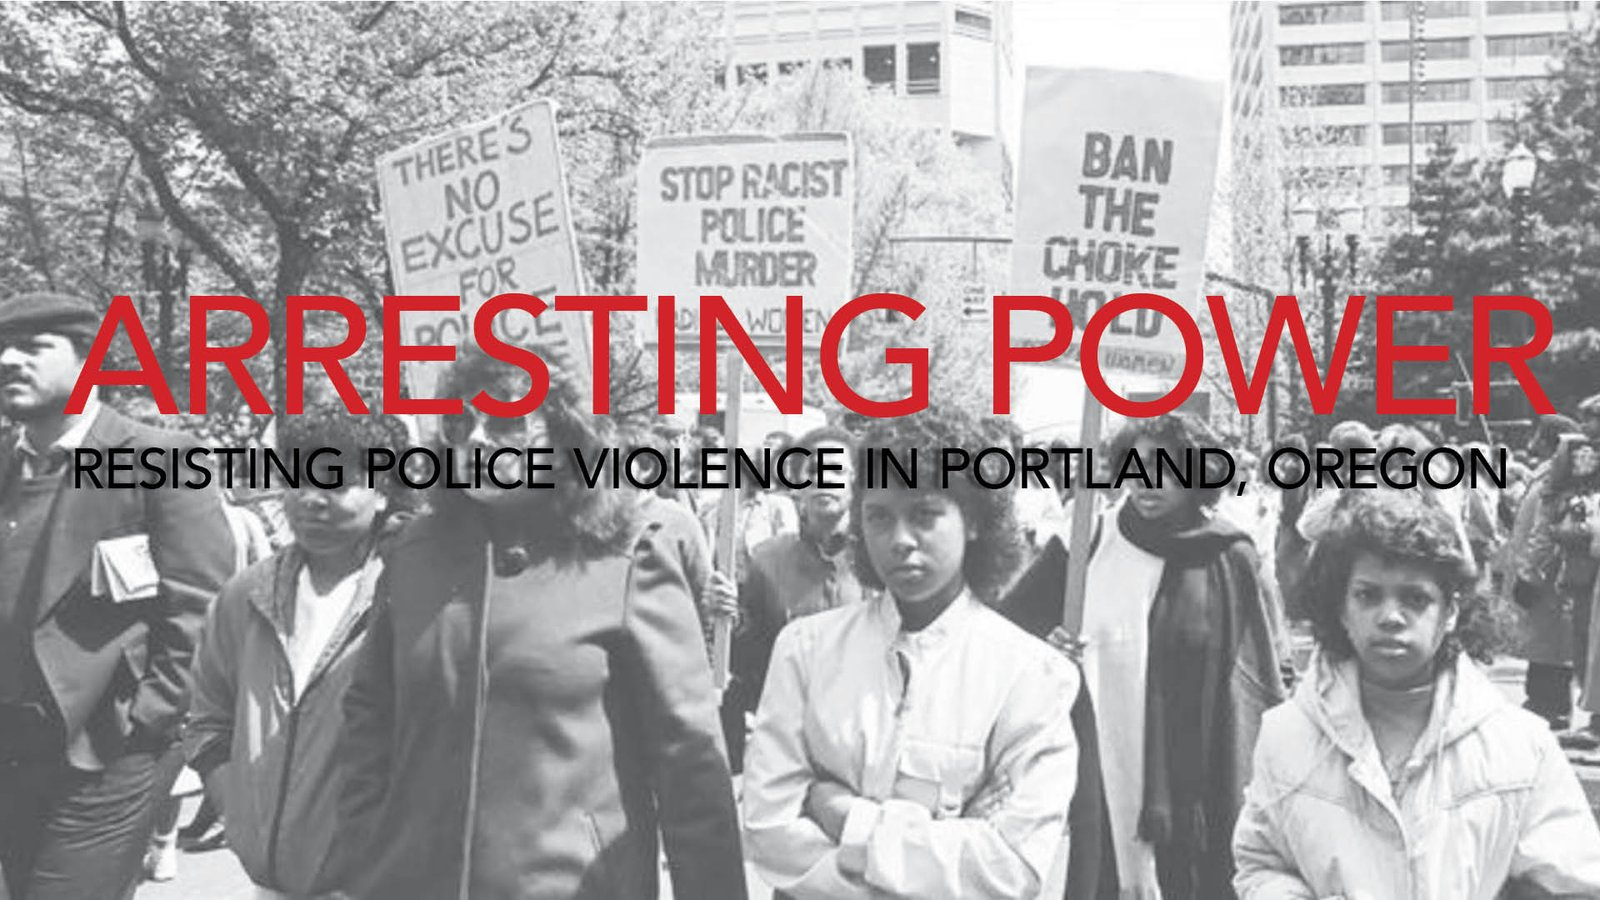 Arresting Power - Resisting Police Violence in Oregon